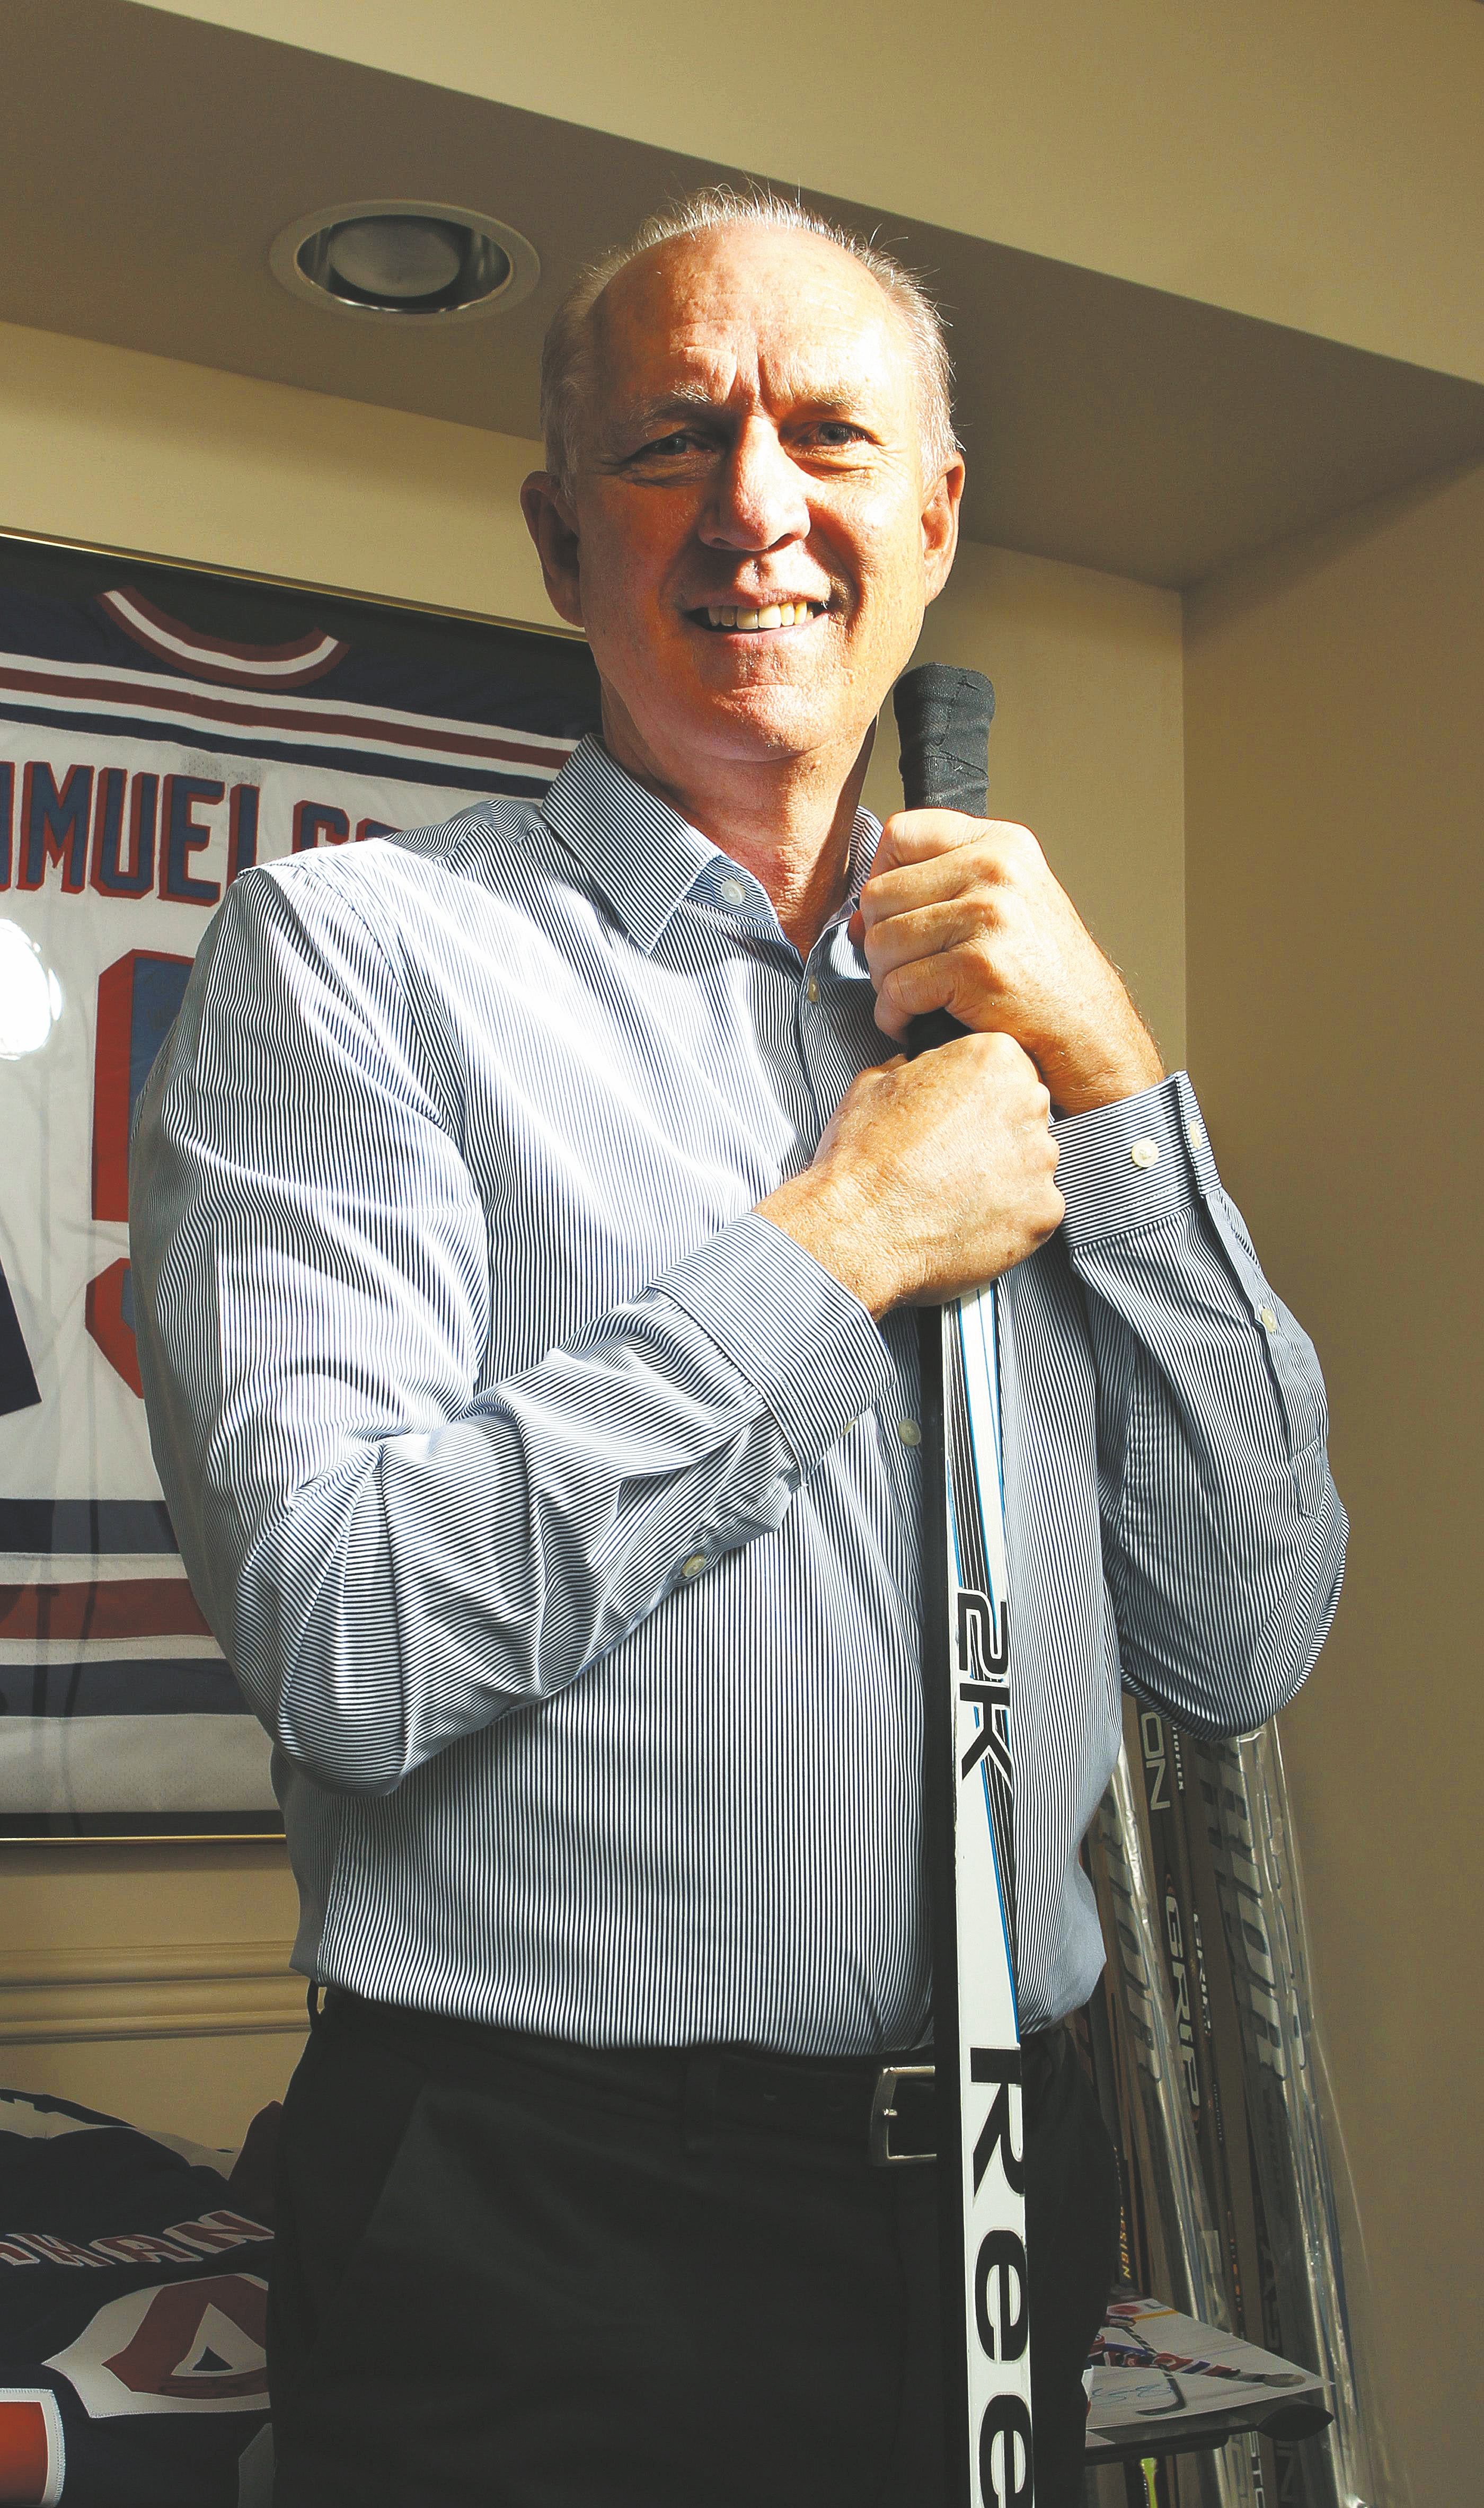 After doing a favor for Randy Cunneyworth and Ted Nolan during their playing days, Steve Bartlett switched gears going from a career in which he owned motorcycle shops to becoming one of the NHL's most-respected player agents.